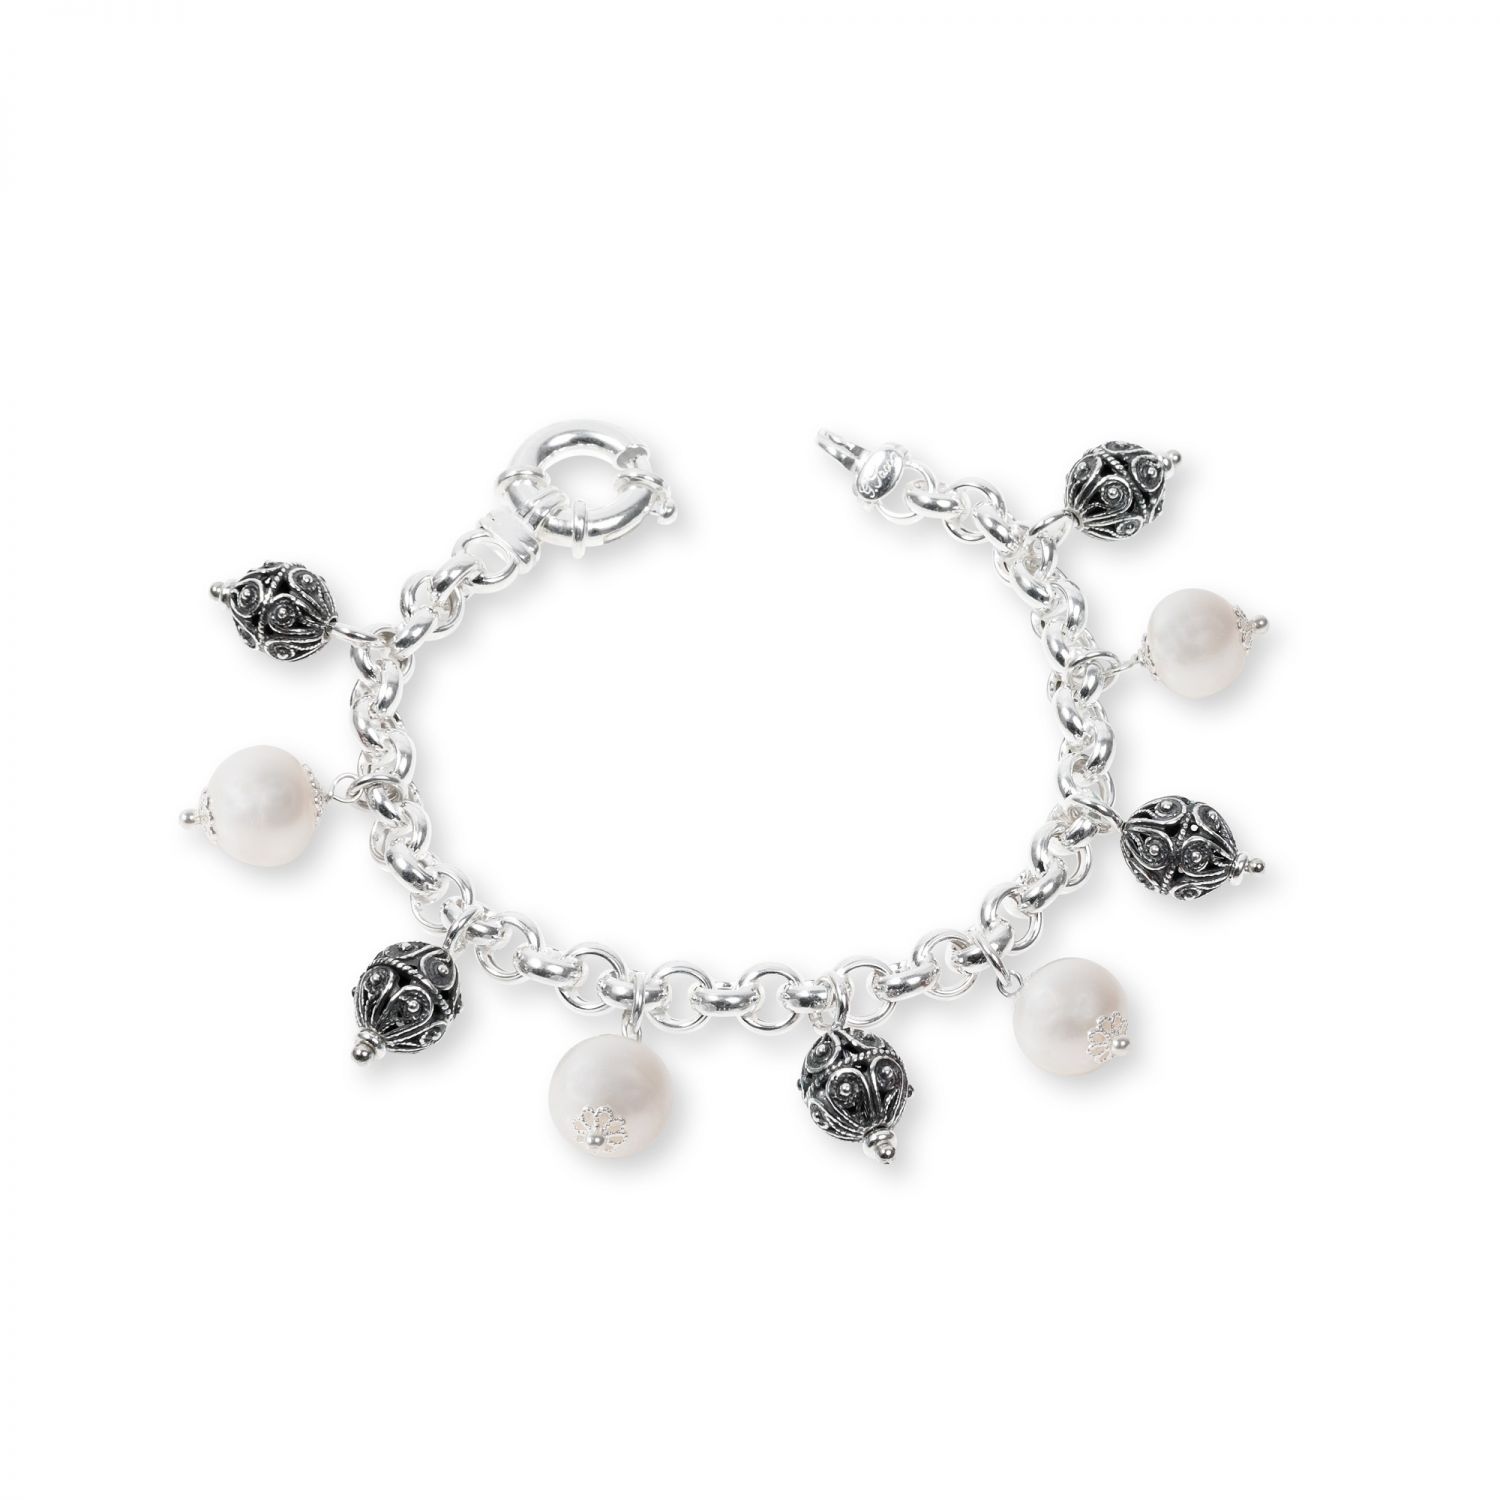 Silver Bracelet with pearls and sinacles (33133PB)